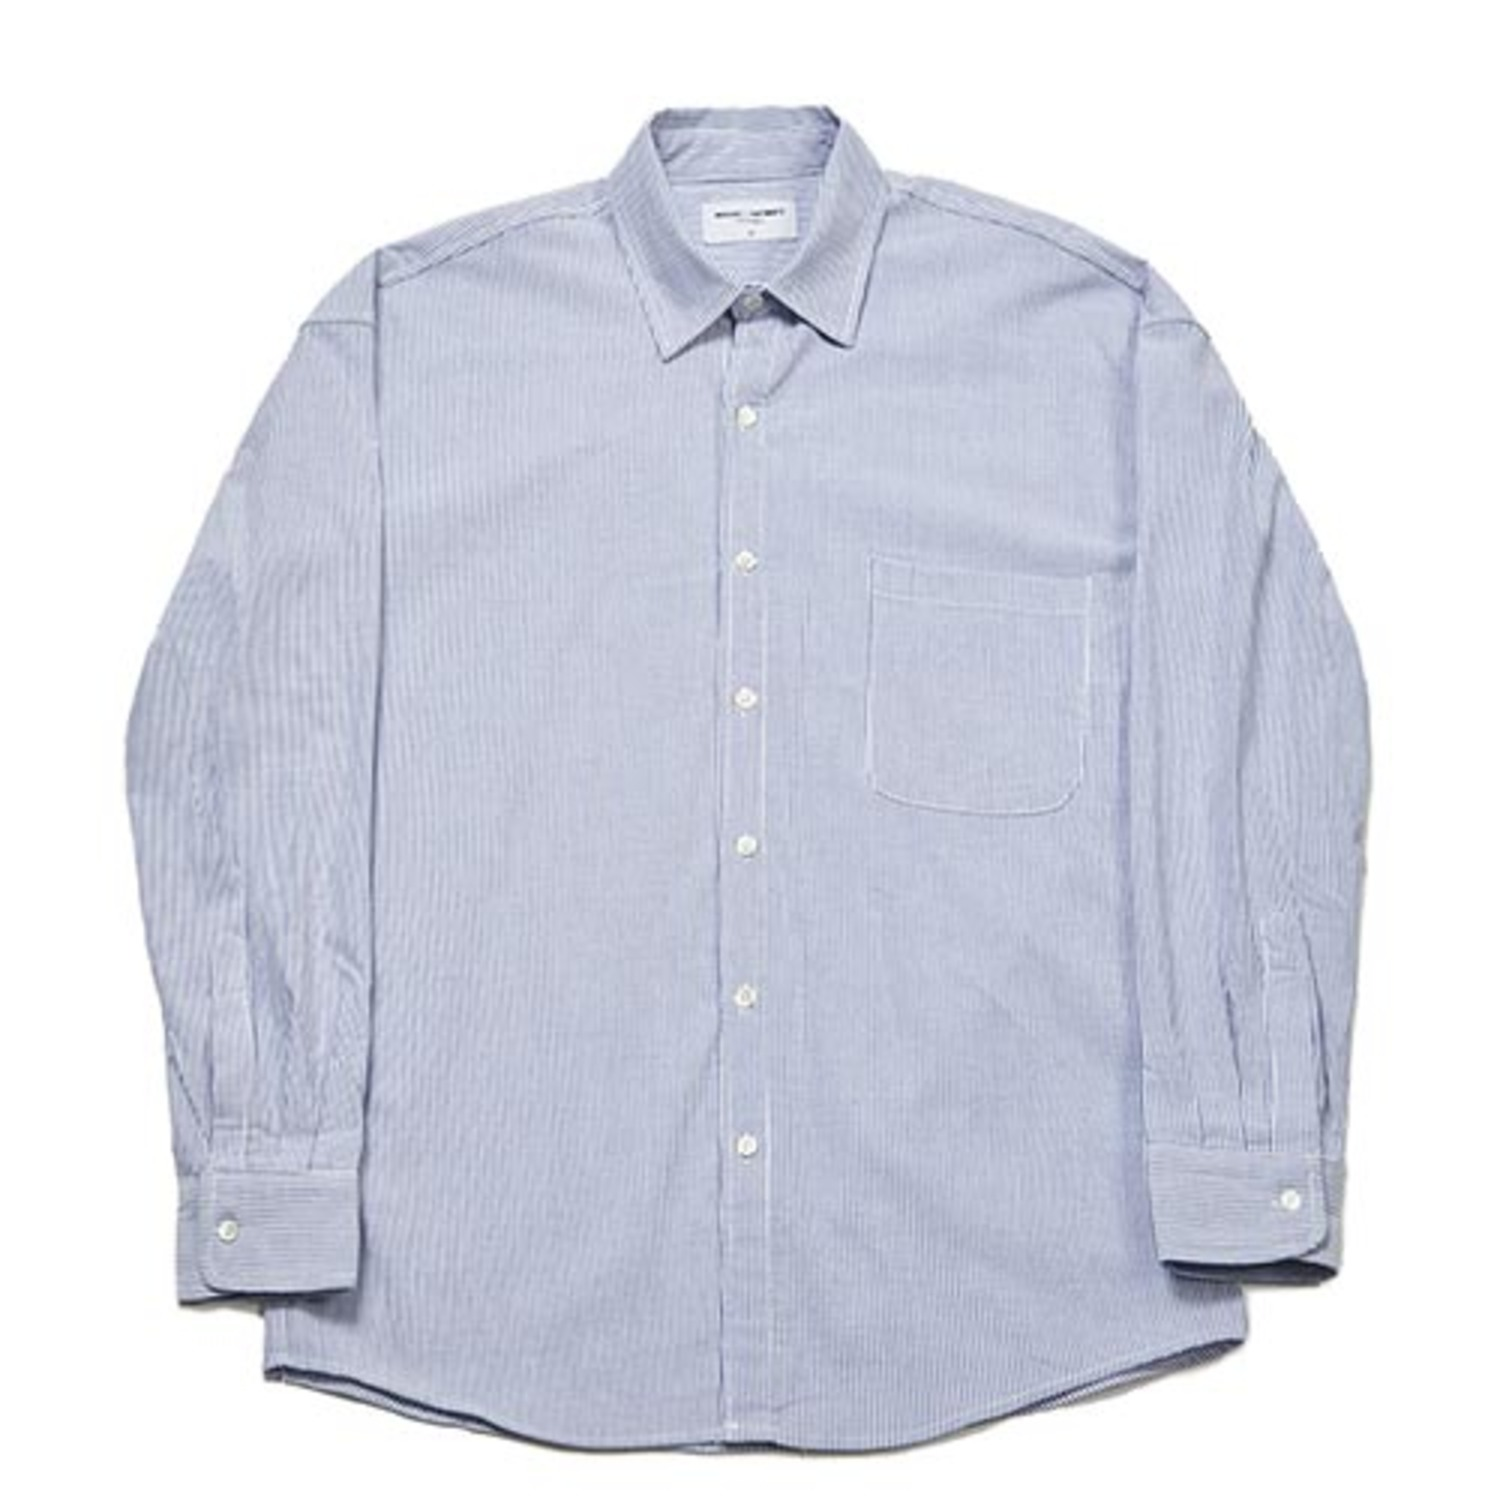 [PARTIMENTO x 86]Semiover Stripe Shirts (Navy)(20%SALE)